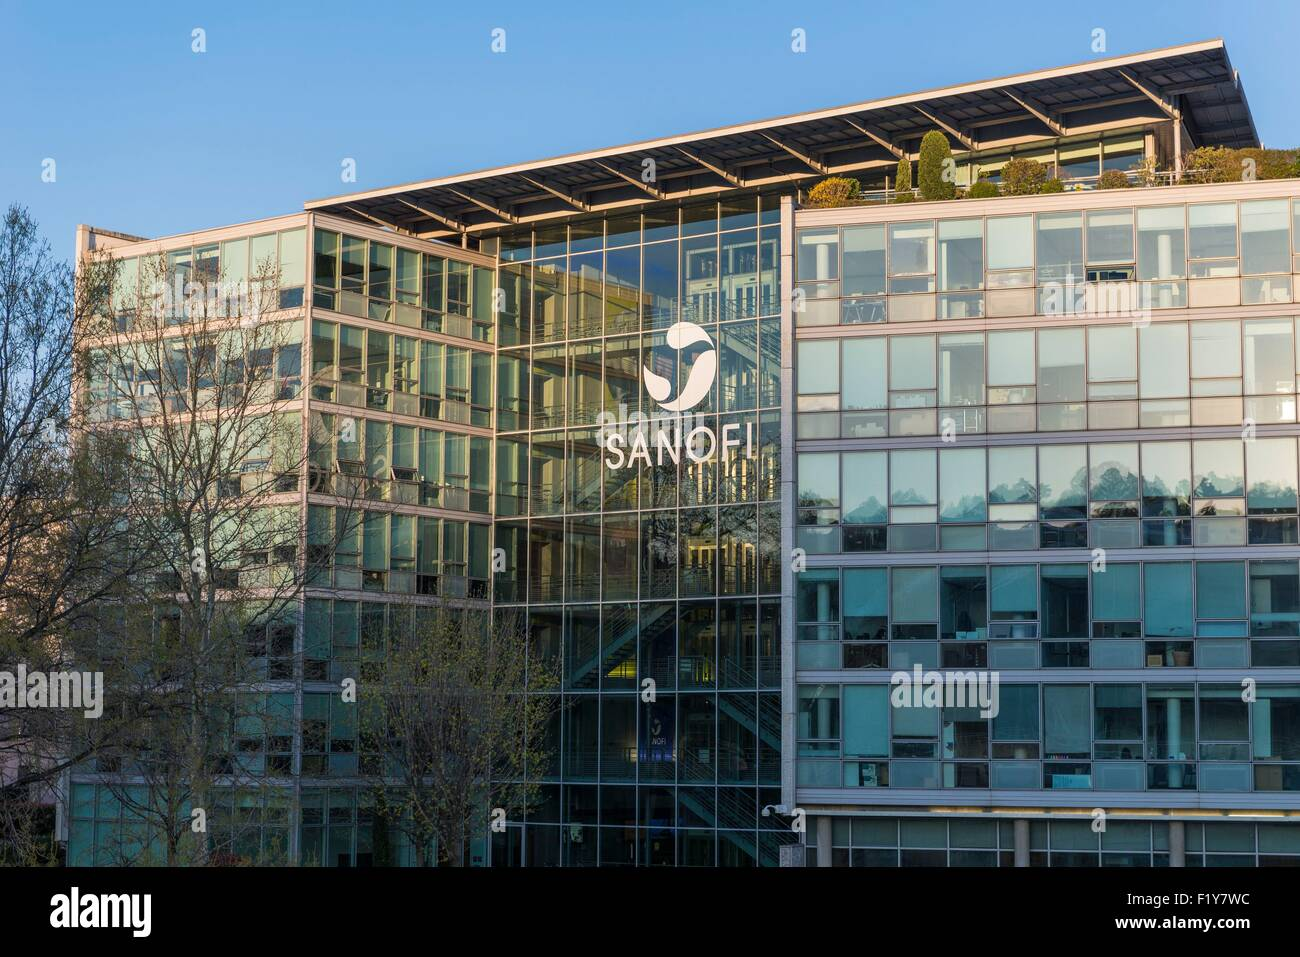 France rhone lyon gerland district the headquarters of sanofi stock photo royalty free - Gerlands corporate office ...